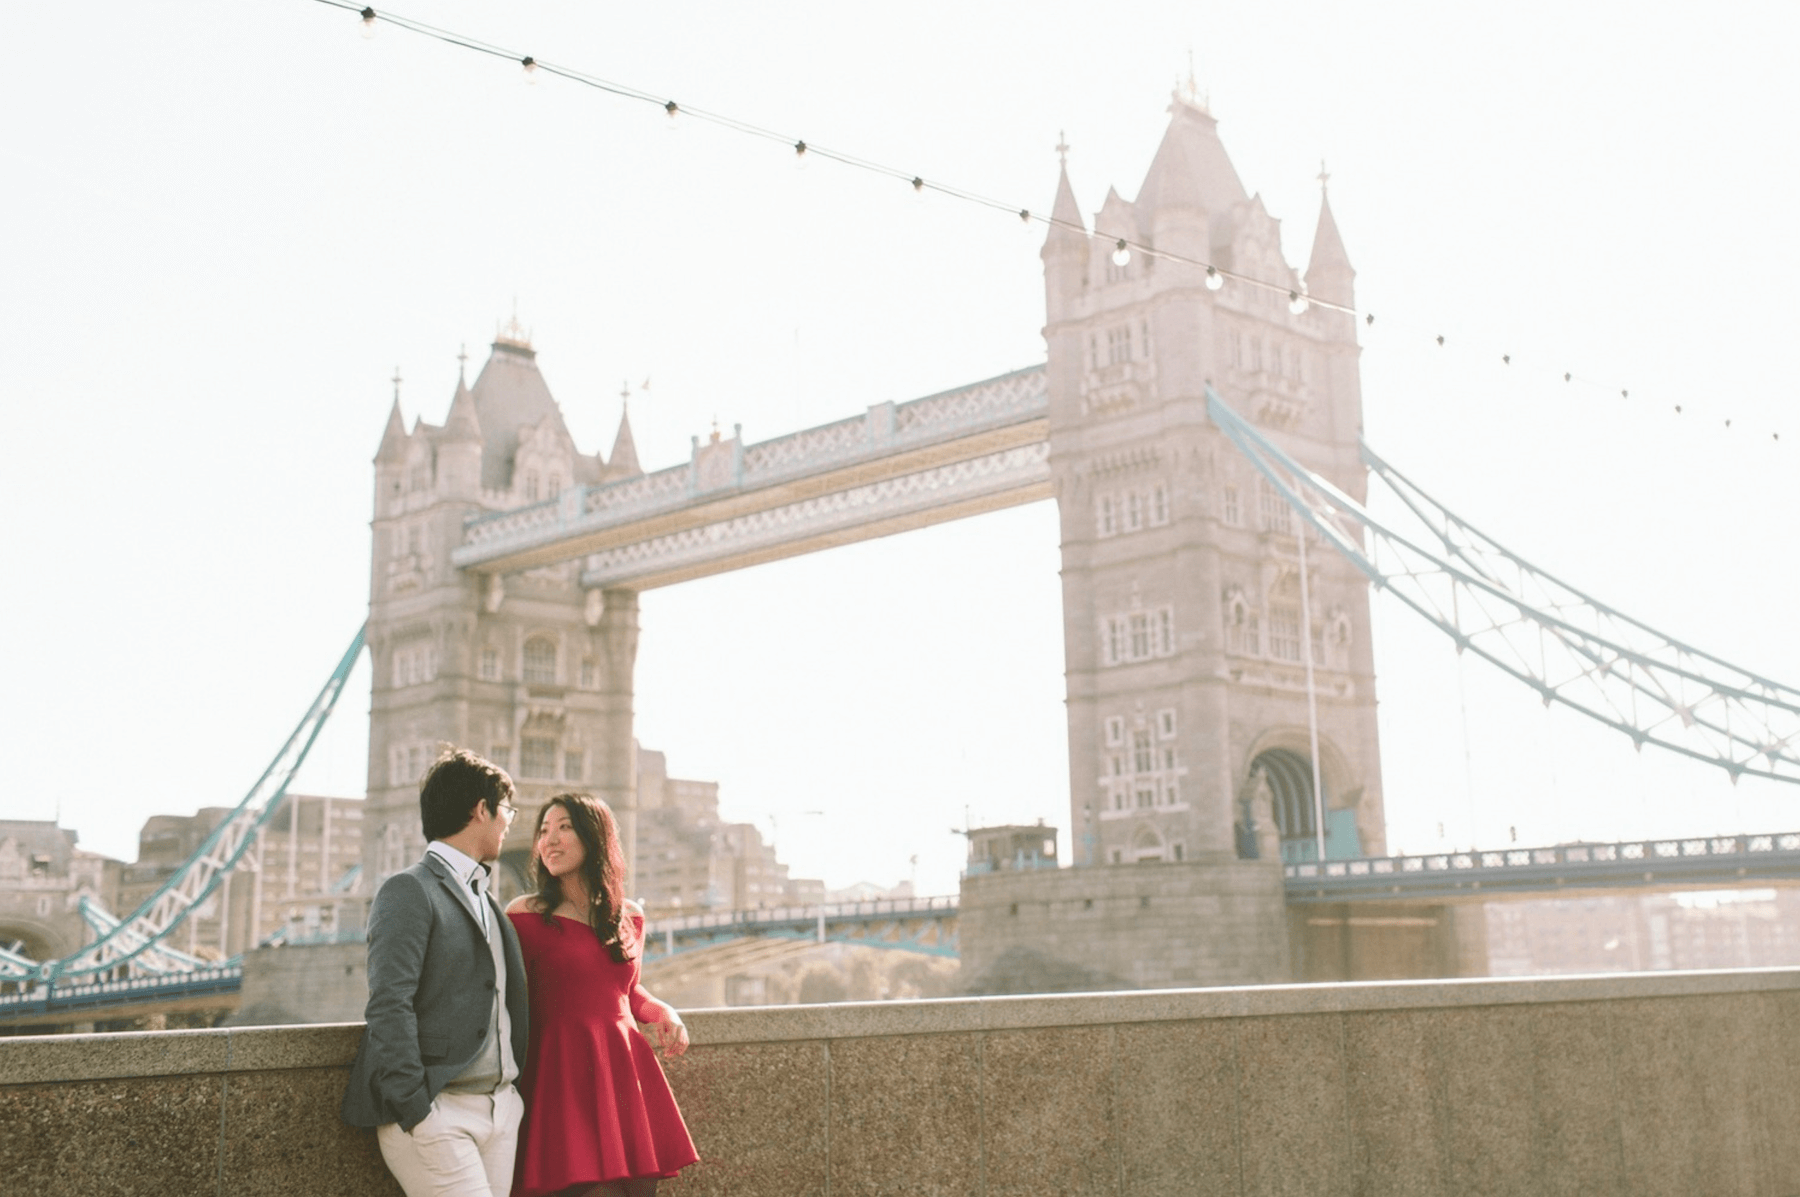 Asian couple looking at each other lovingly with the Tower Bridge in the background in London, UK